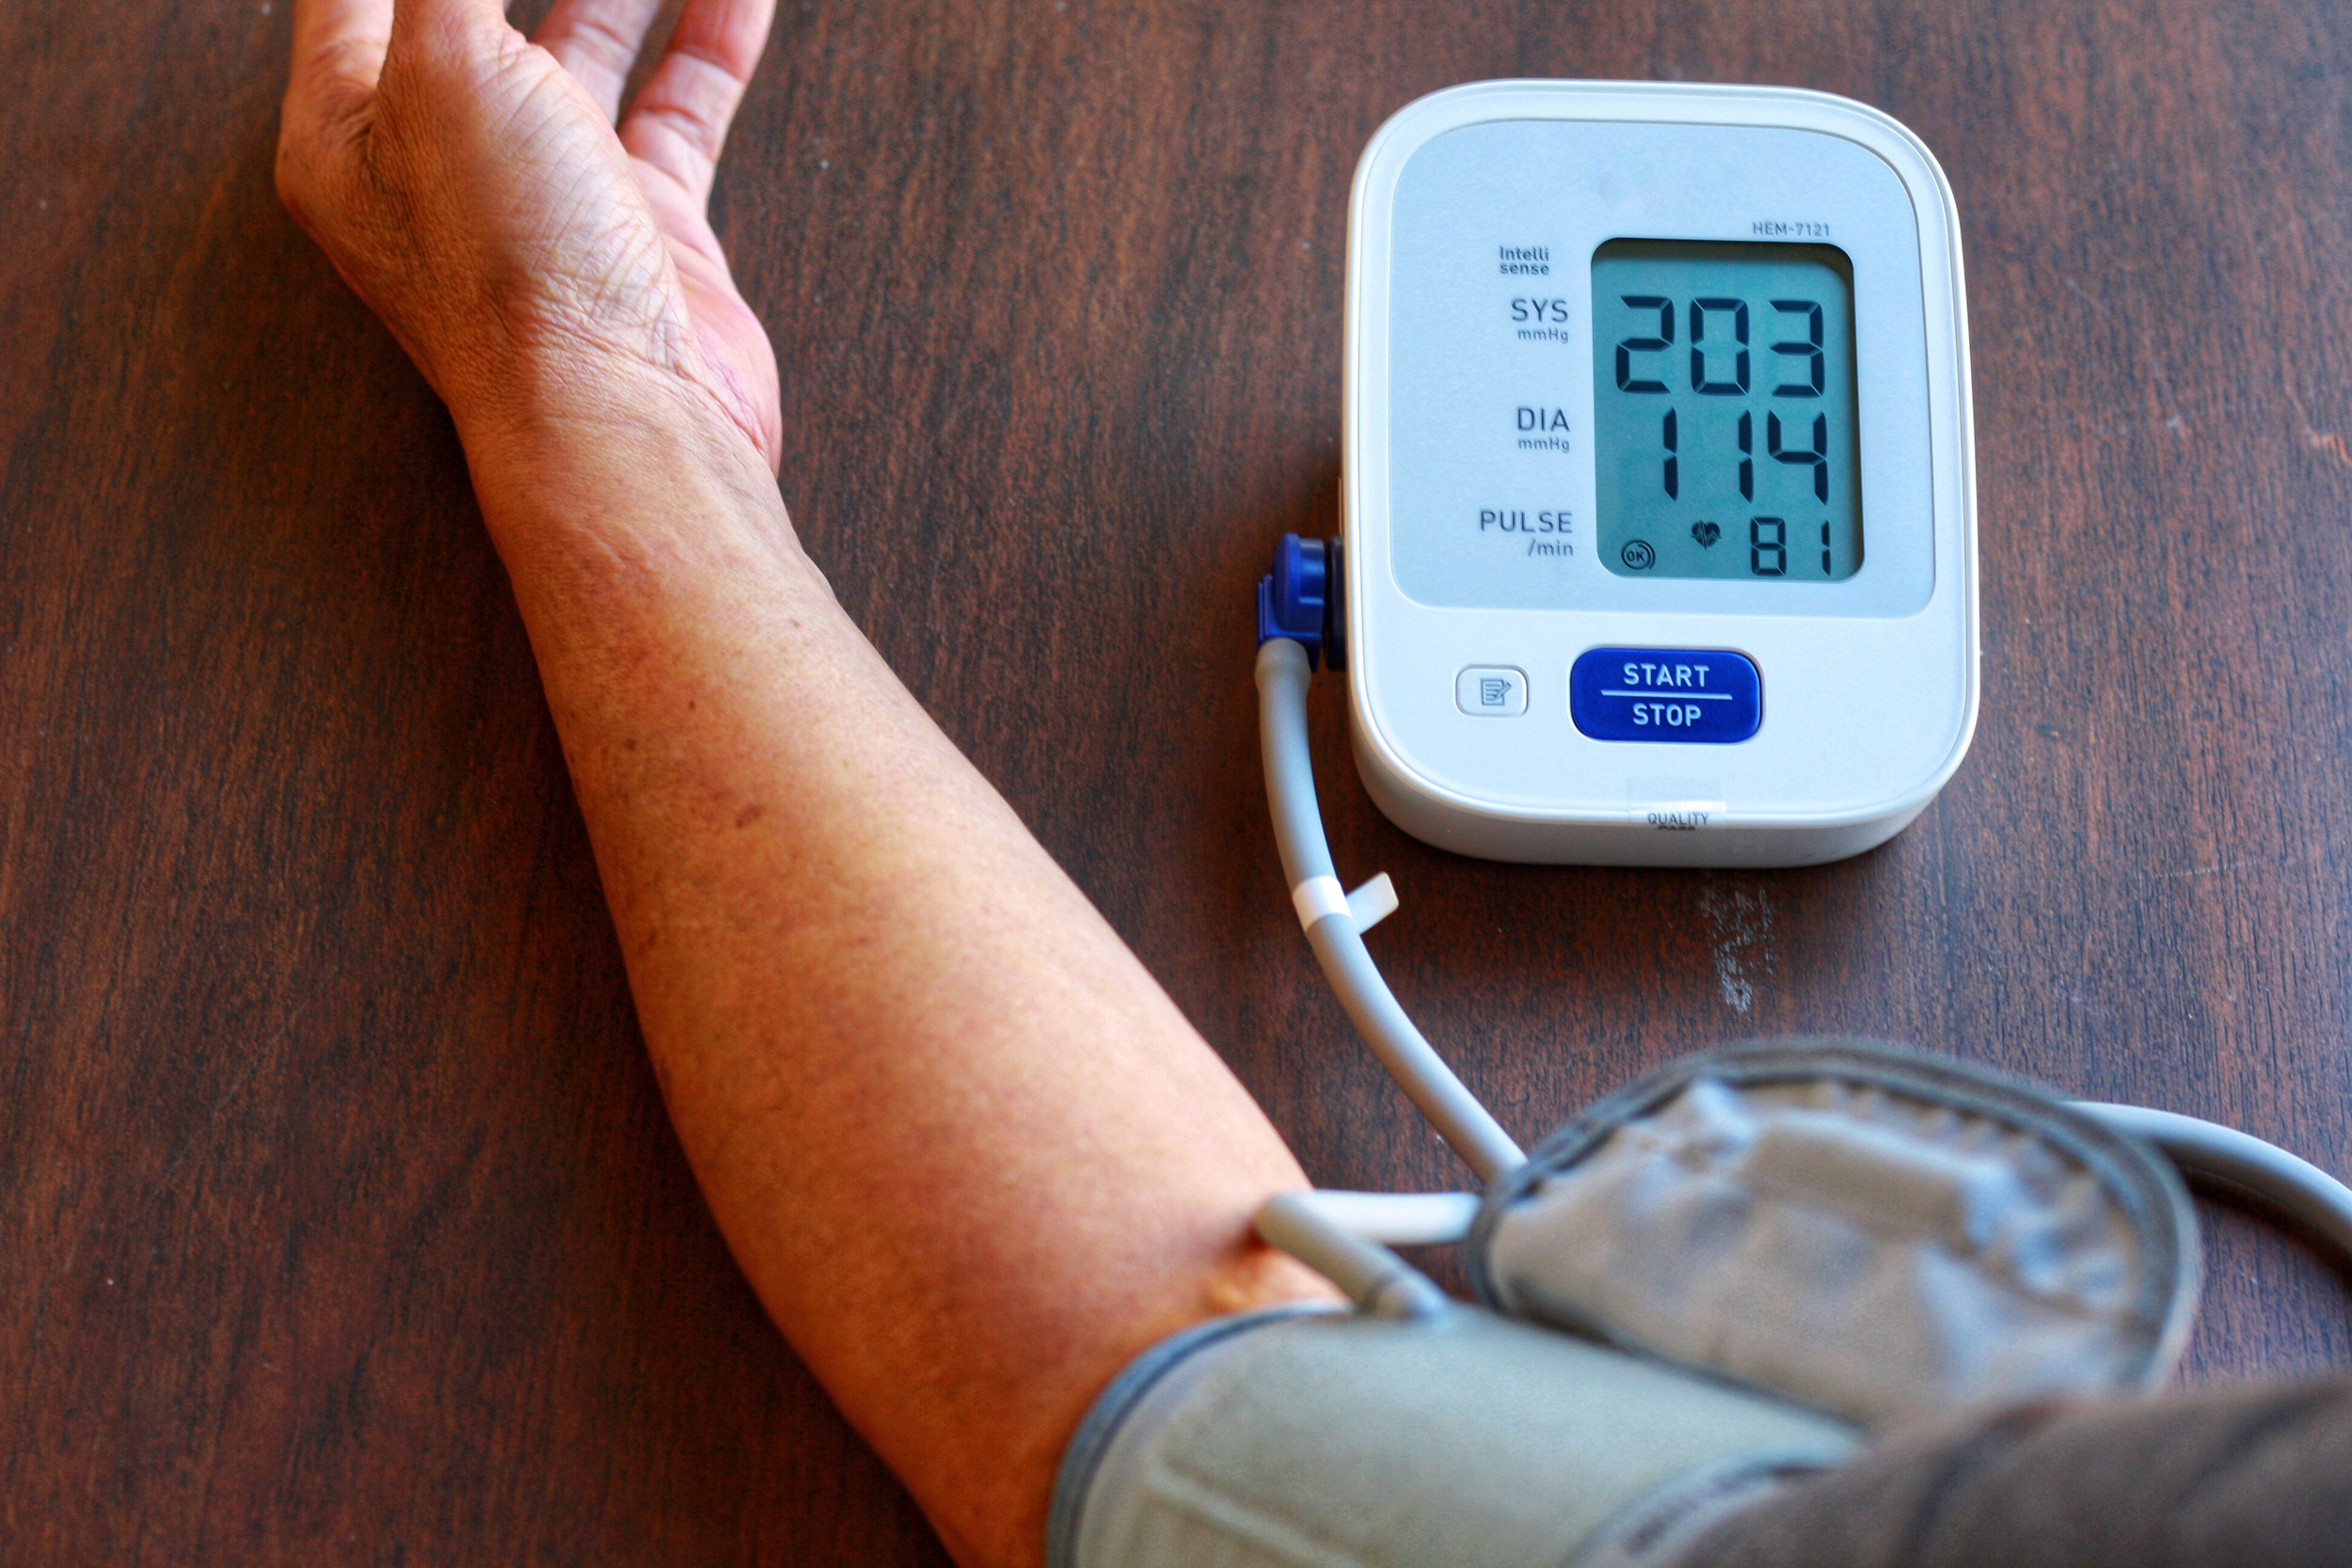 Using Acupuncture for High Blood Pressure